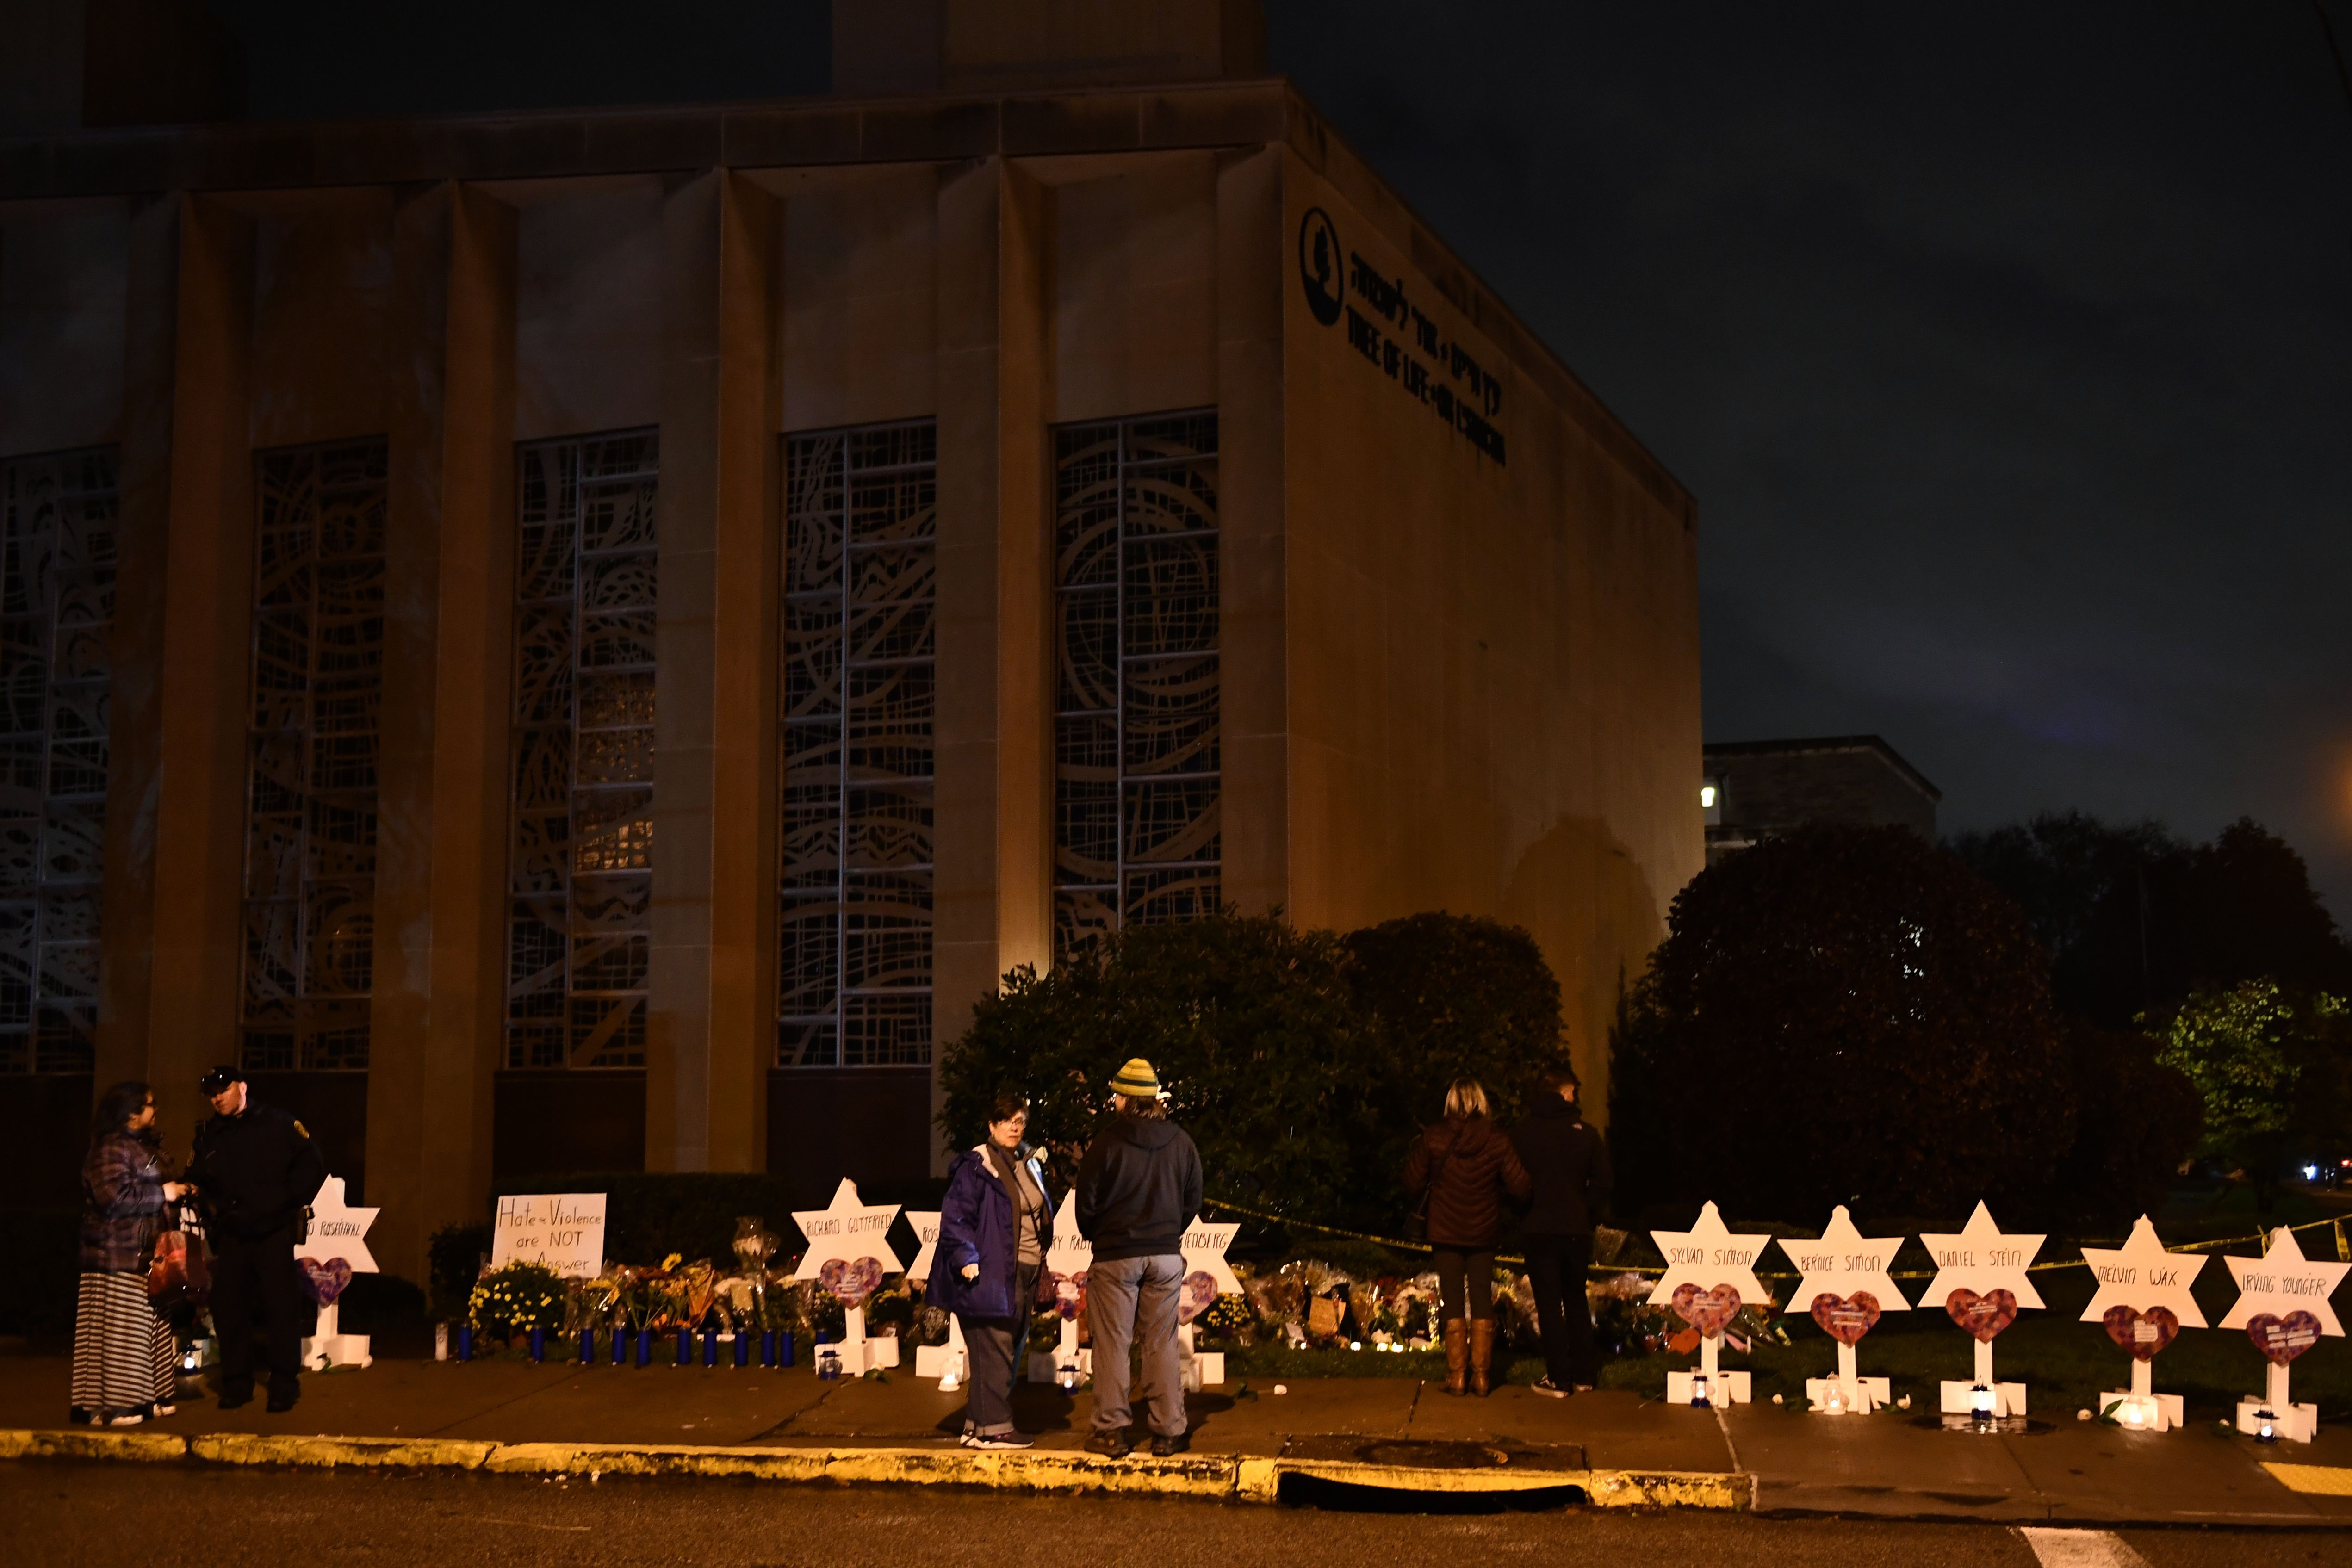 "People stand in front of a memorial on October 28, 2018, at the Tree of Life synagogue after a shooting there left 11 people dead in the Squirrel Hill neighborhood of Pittsburgh on October 27. - A man suspected of bursting into a Pittsburgh synagogue during a baby-naming ceremony and gunning down 11 people has been charged with murder, in the deadliest anti-Semitic attack in recent US history. The suspect -- identified as a 46-year-old Robert Bowers -- reportedly yelled ""All Jews must die"" as he sprayed bullets into the Tree of Life synagogue during Sabbath services on Saturday before exchanging fire with police, in an attack that also wounded six people.(BRENDAN SMIALOWSKI/AFP/Getty Images)"